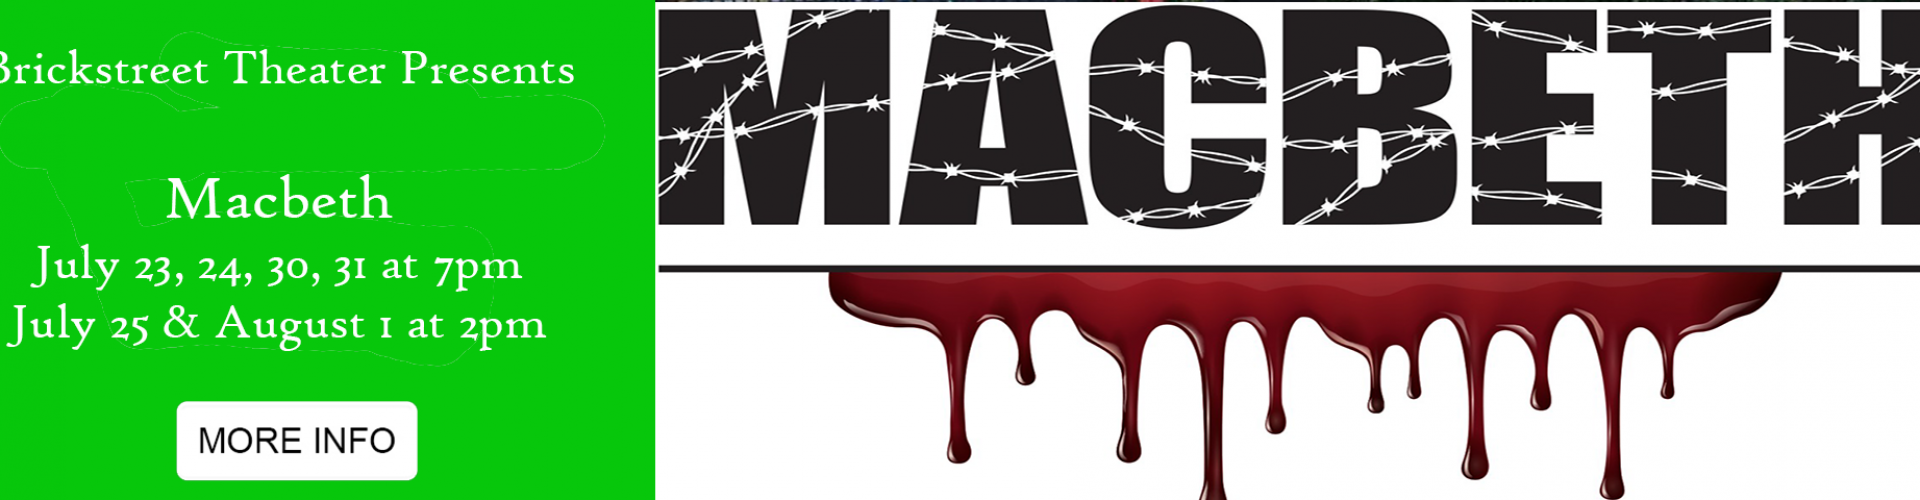 Brickstreet Theater Presents Macbeth Click for more information and tickets